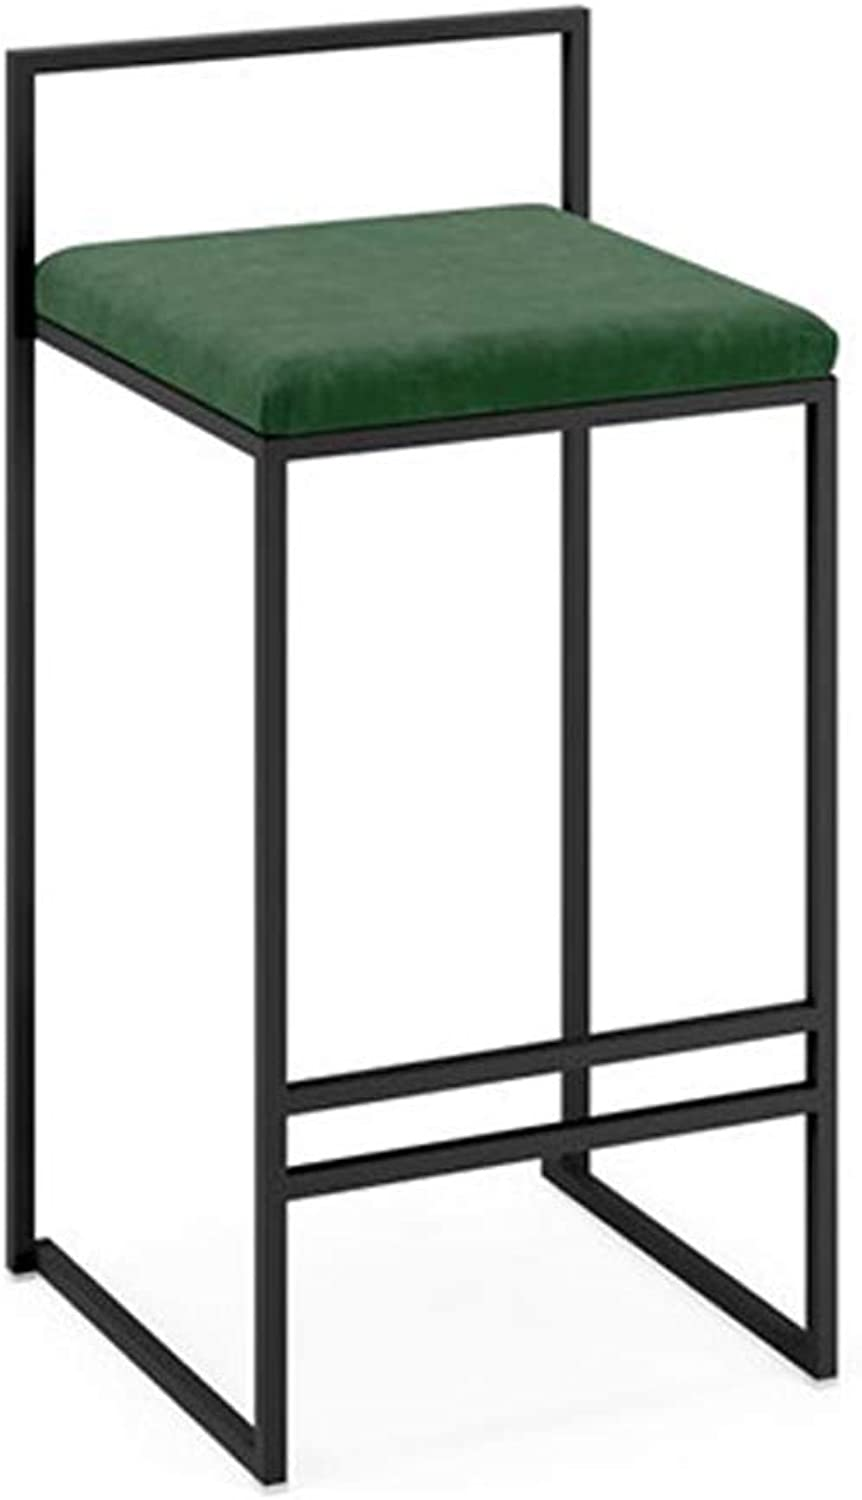 Dining Chair   Full Backed Black Metal Bar Stools, Green Flannel Cushion Seat Barstool for Kitchen   Pub   Café Bar Counter Stool Max. Load 440Lb